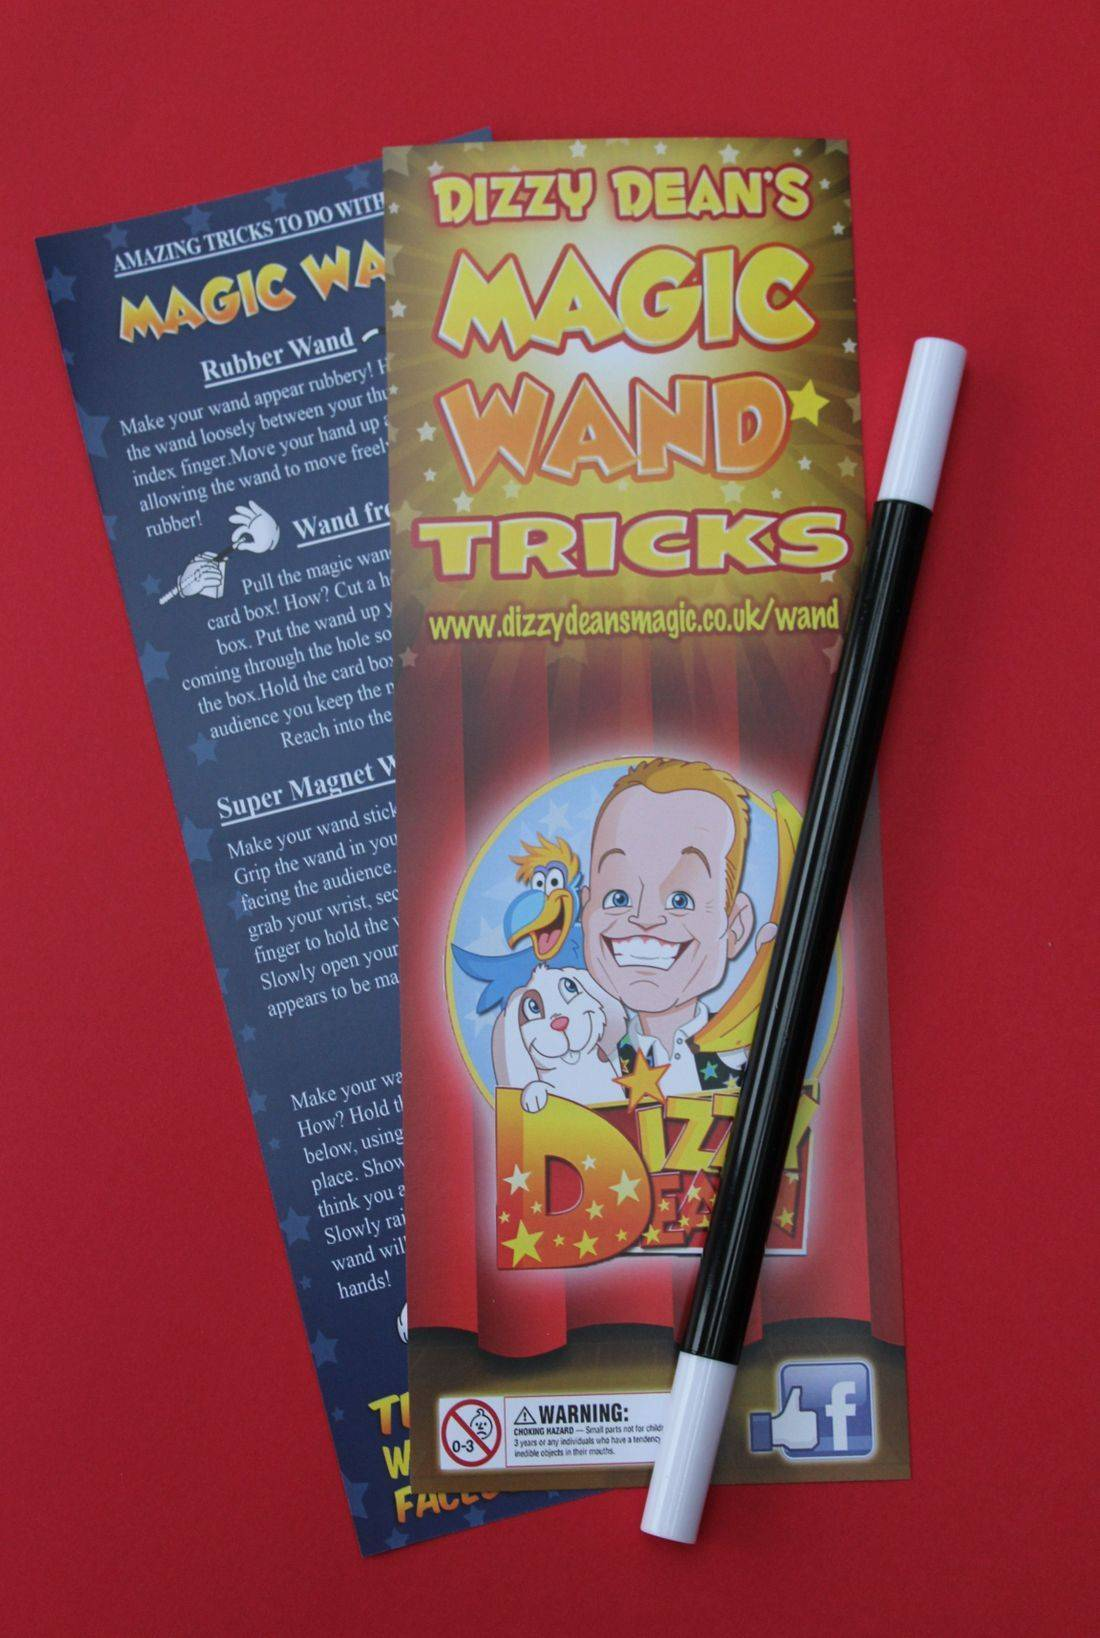 Dizzy Dean's Magic Wand Tricks